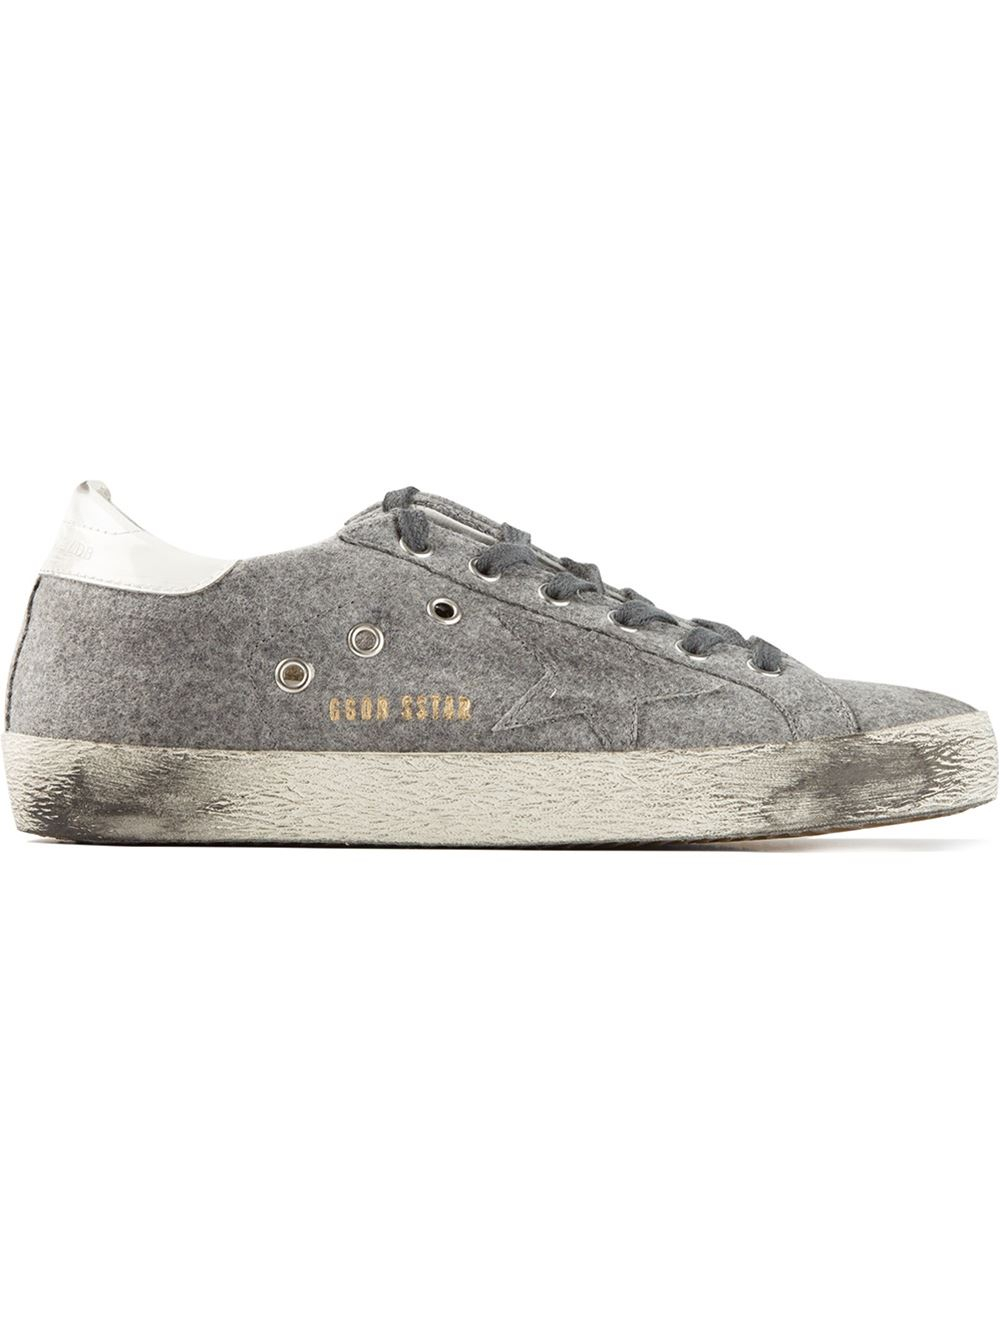 8fee93ff4dbd Lyst - Golden Goose Deluxe Brand Superstar Flannel Trainers in Gray